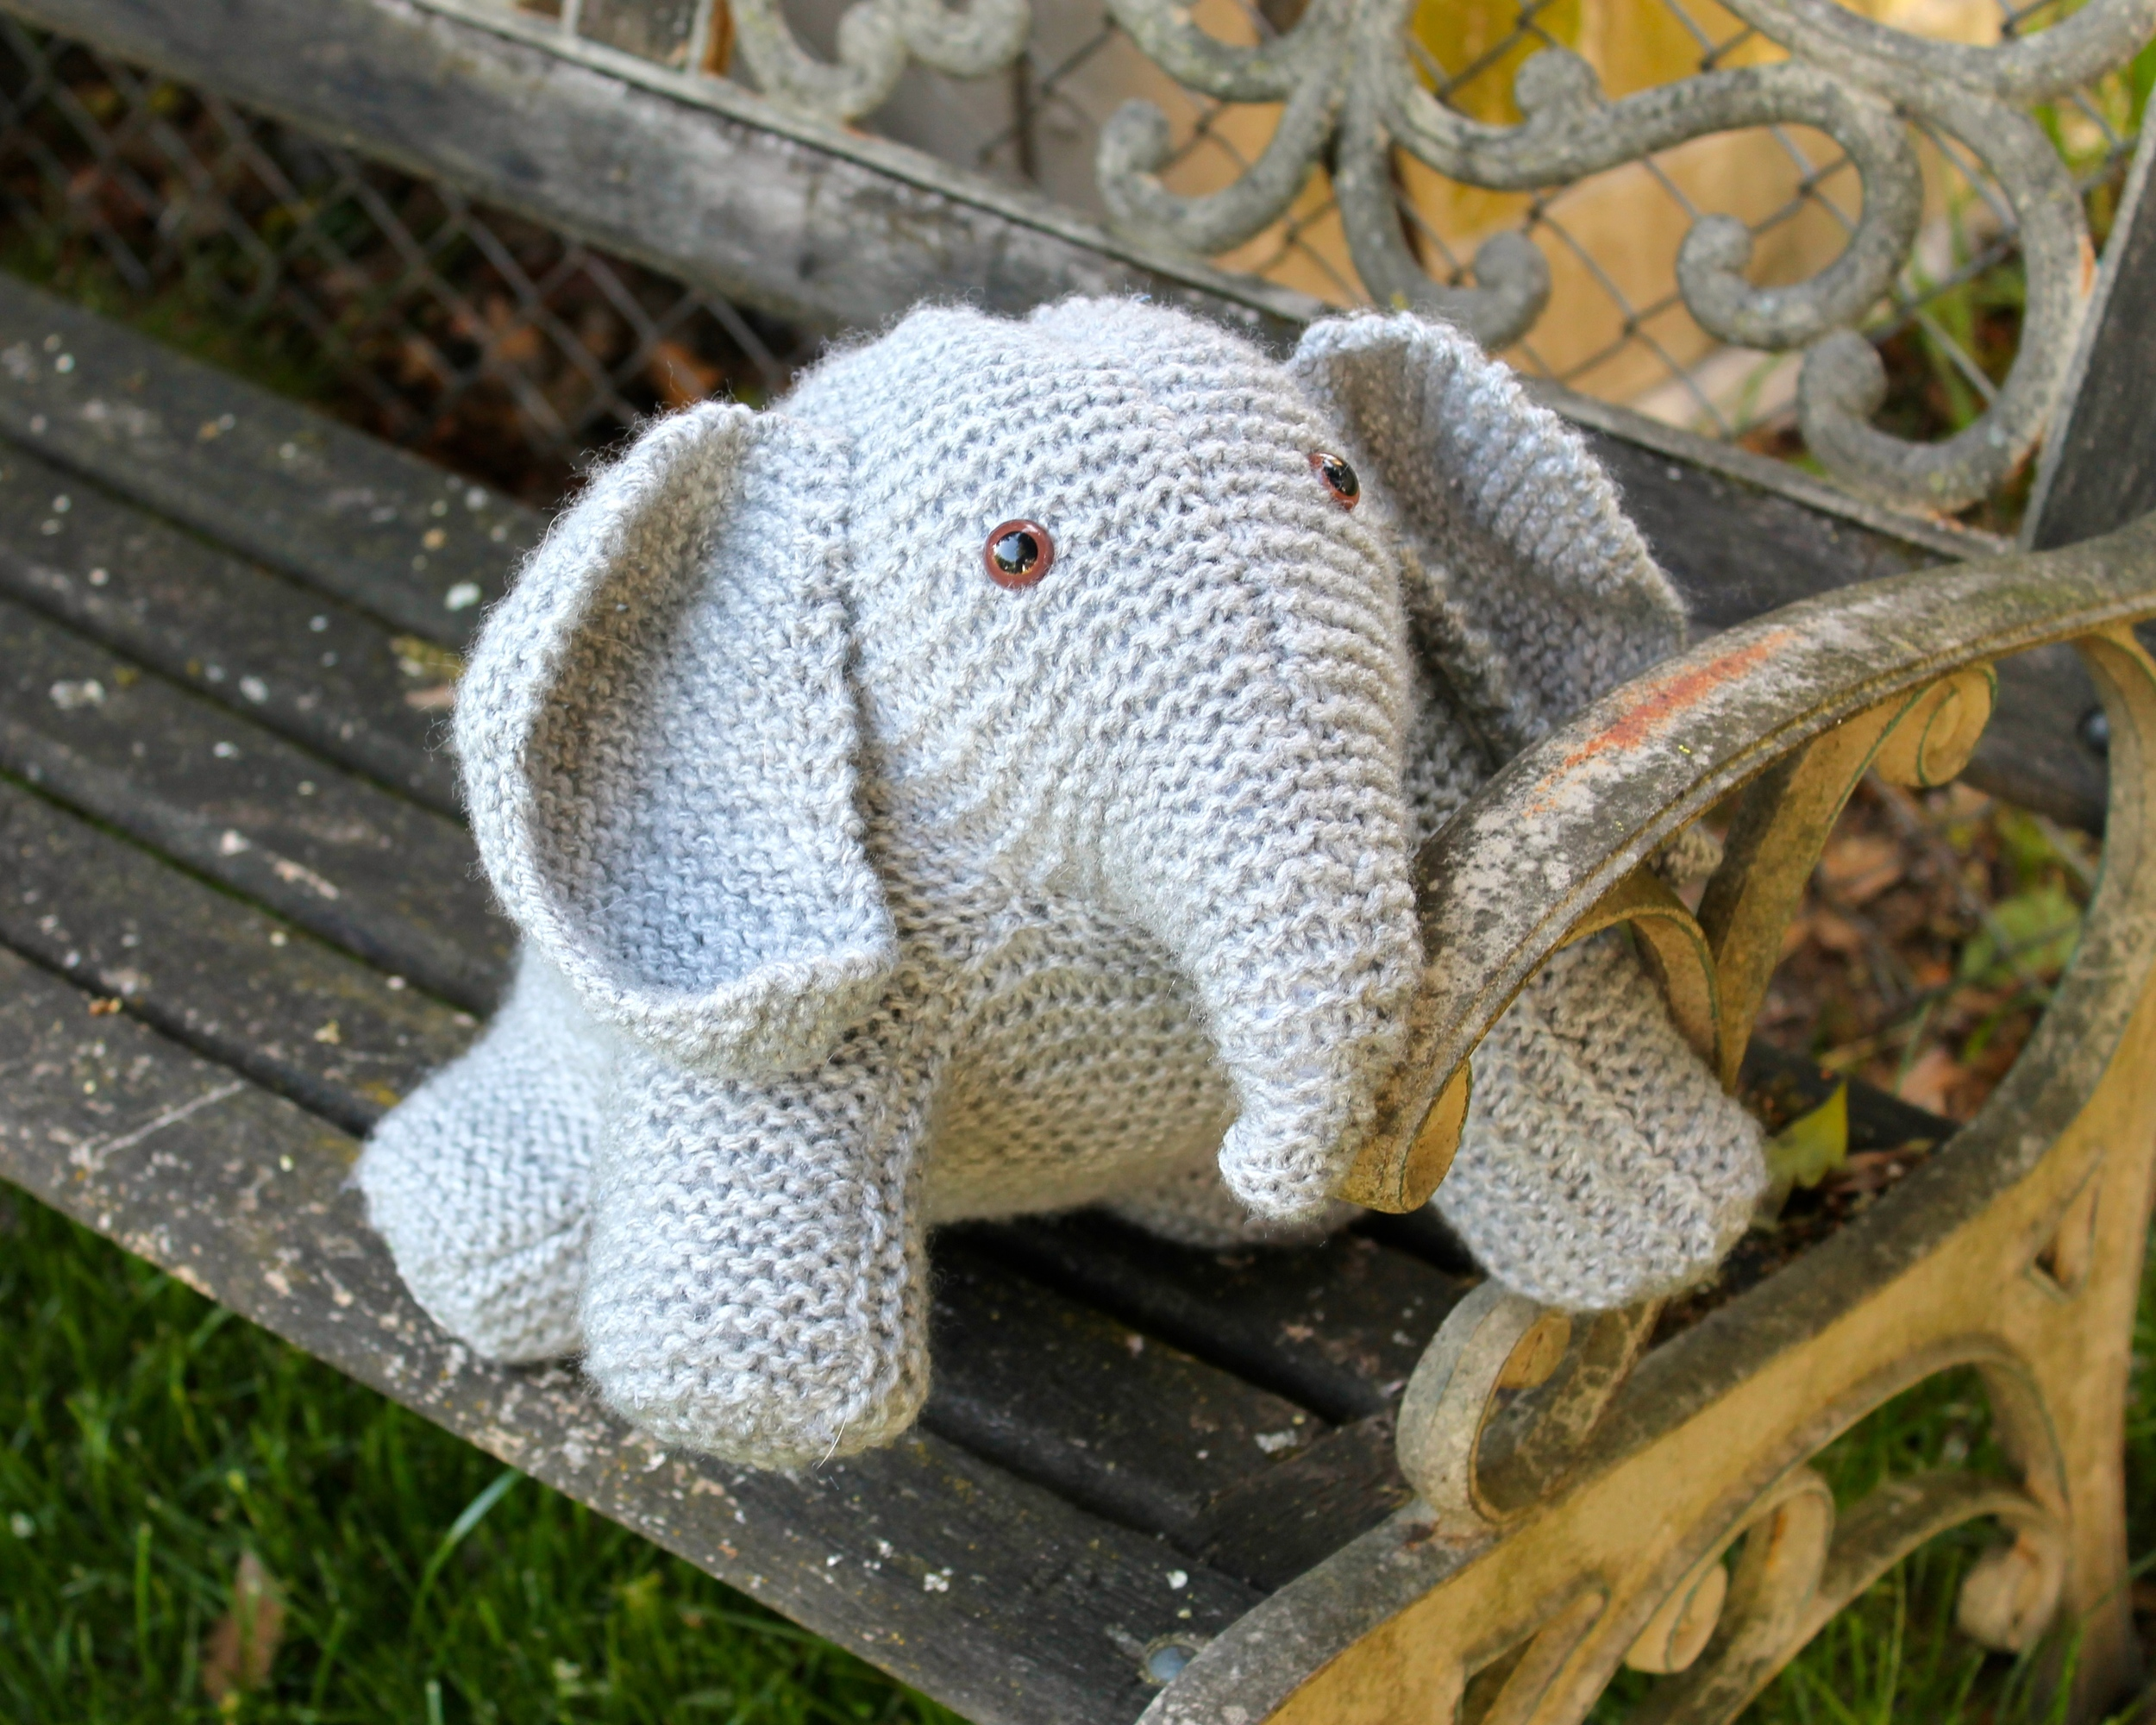 Gray knit stuffed elephant with brown glass eyes, sitting in a bench